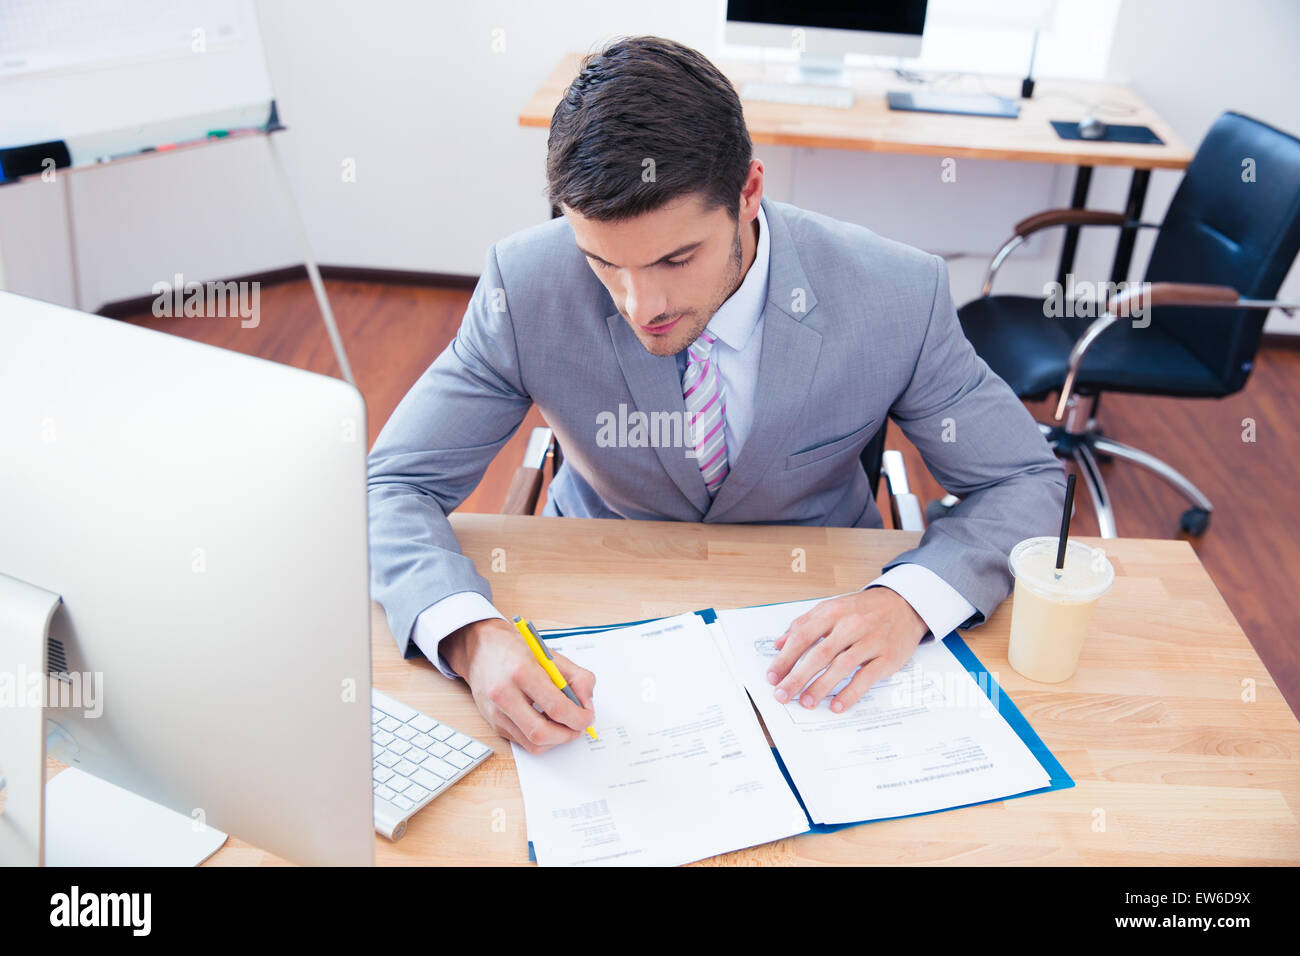 Businessman sitting at the table and signing document in office - Stock Image